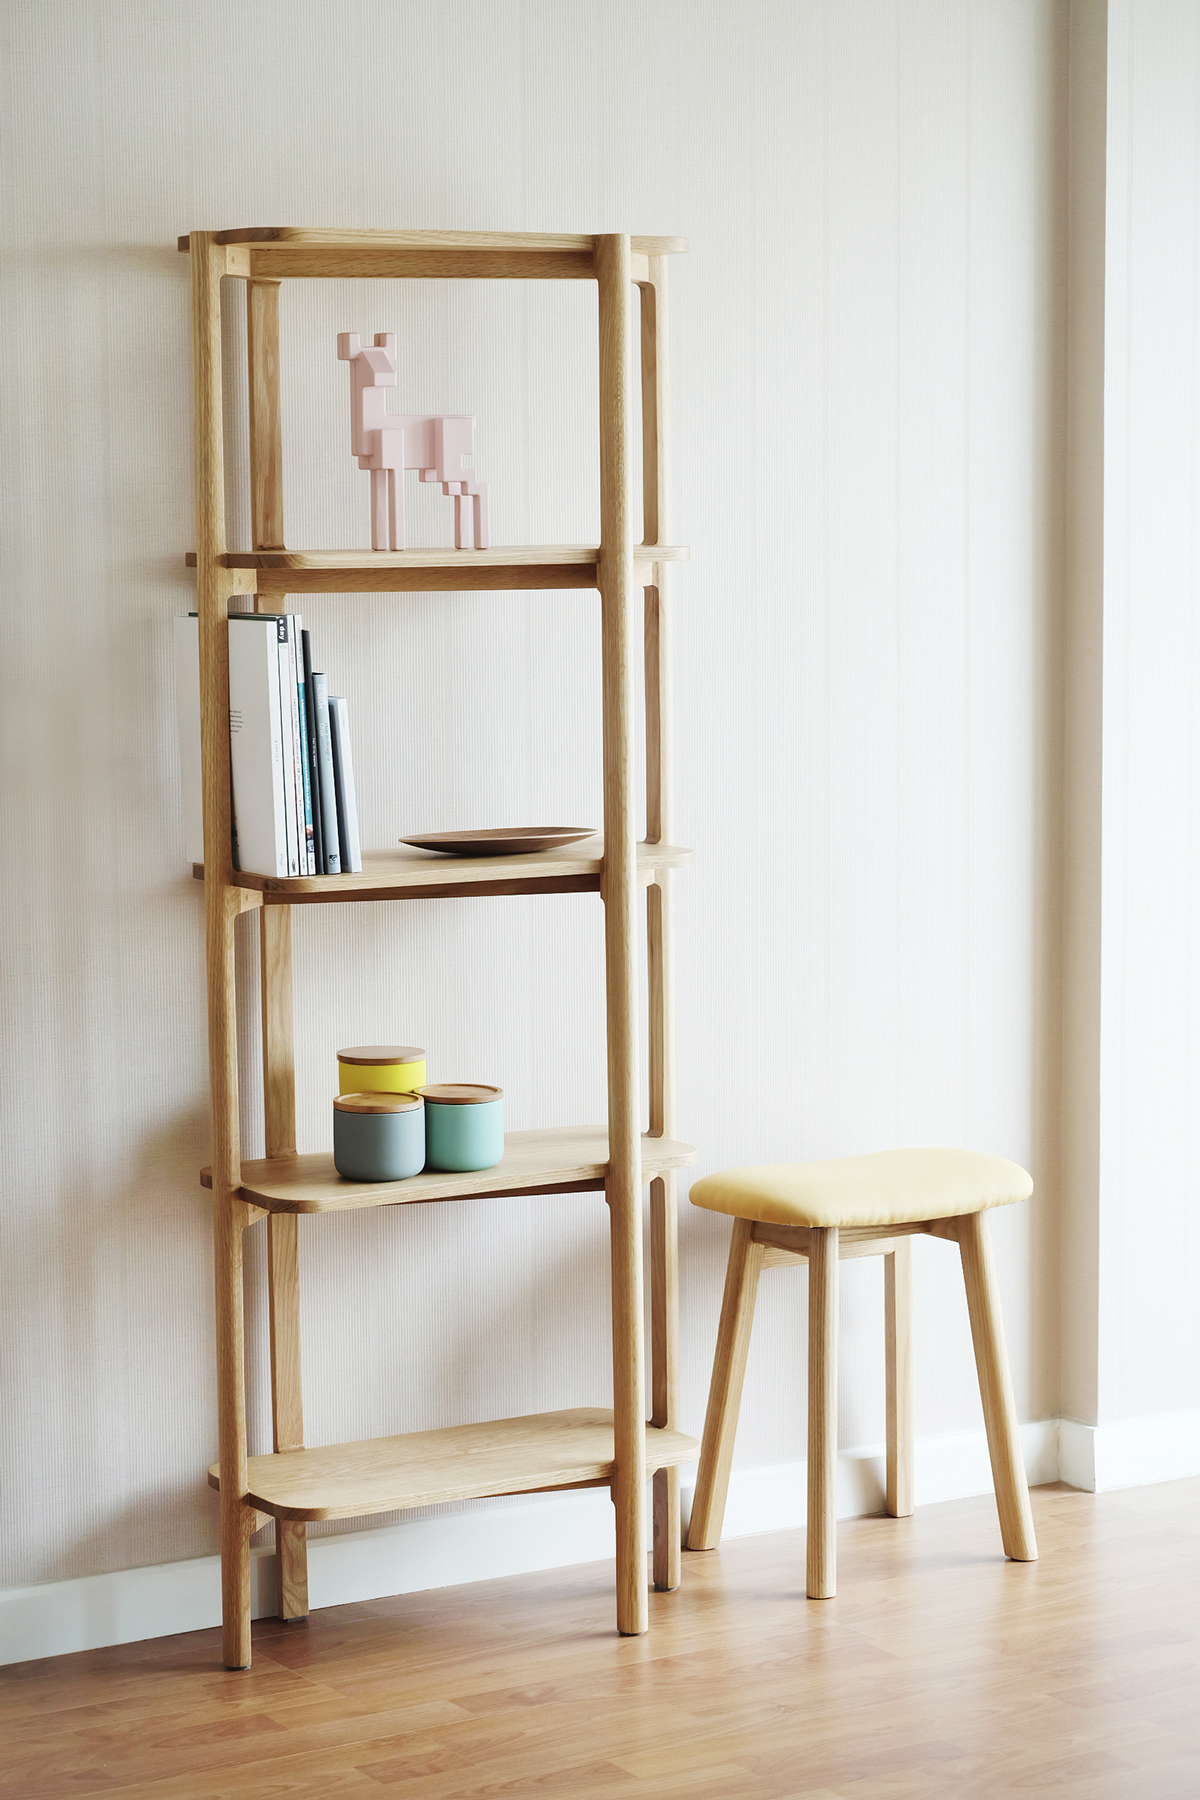 BIDD Shelf by Kittipoom Songsiri